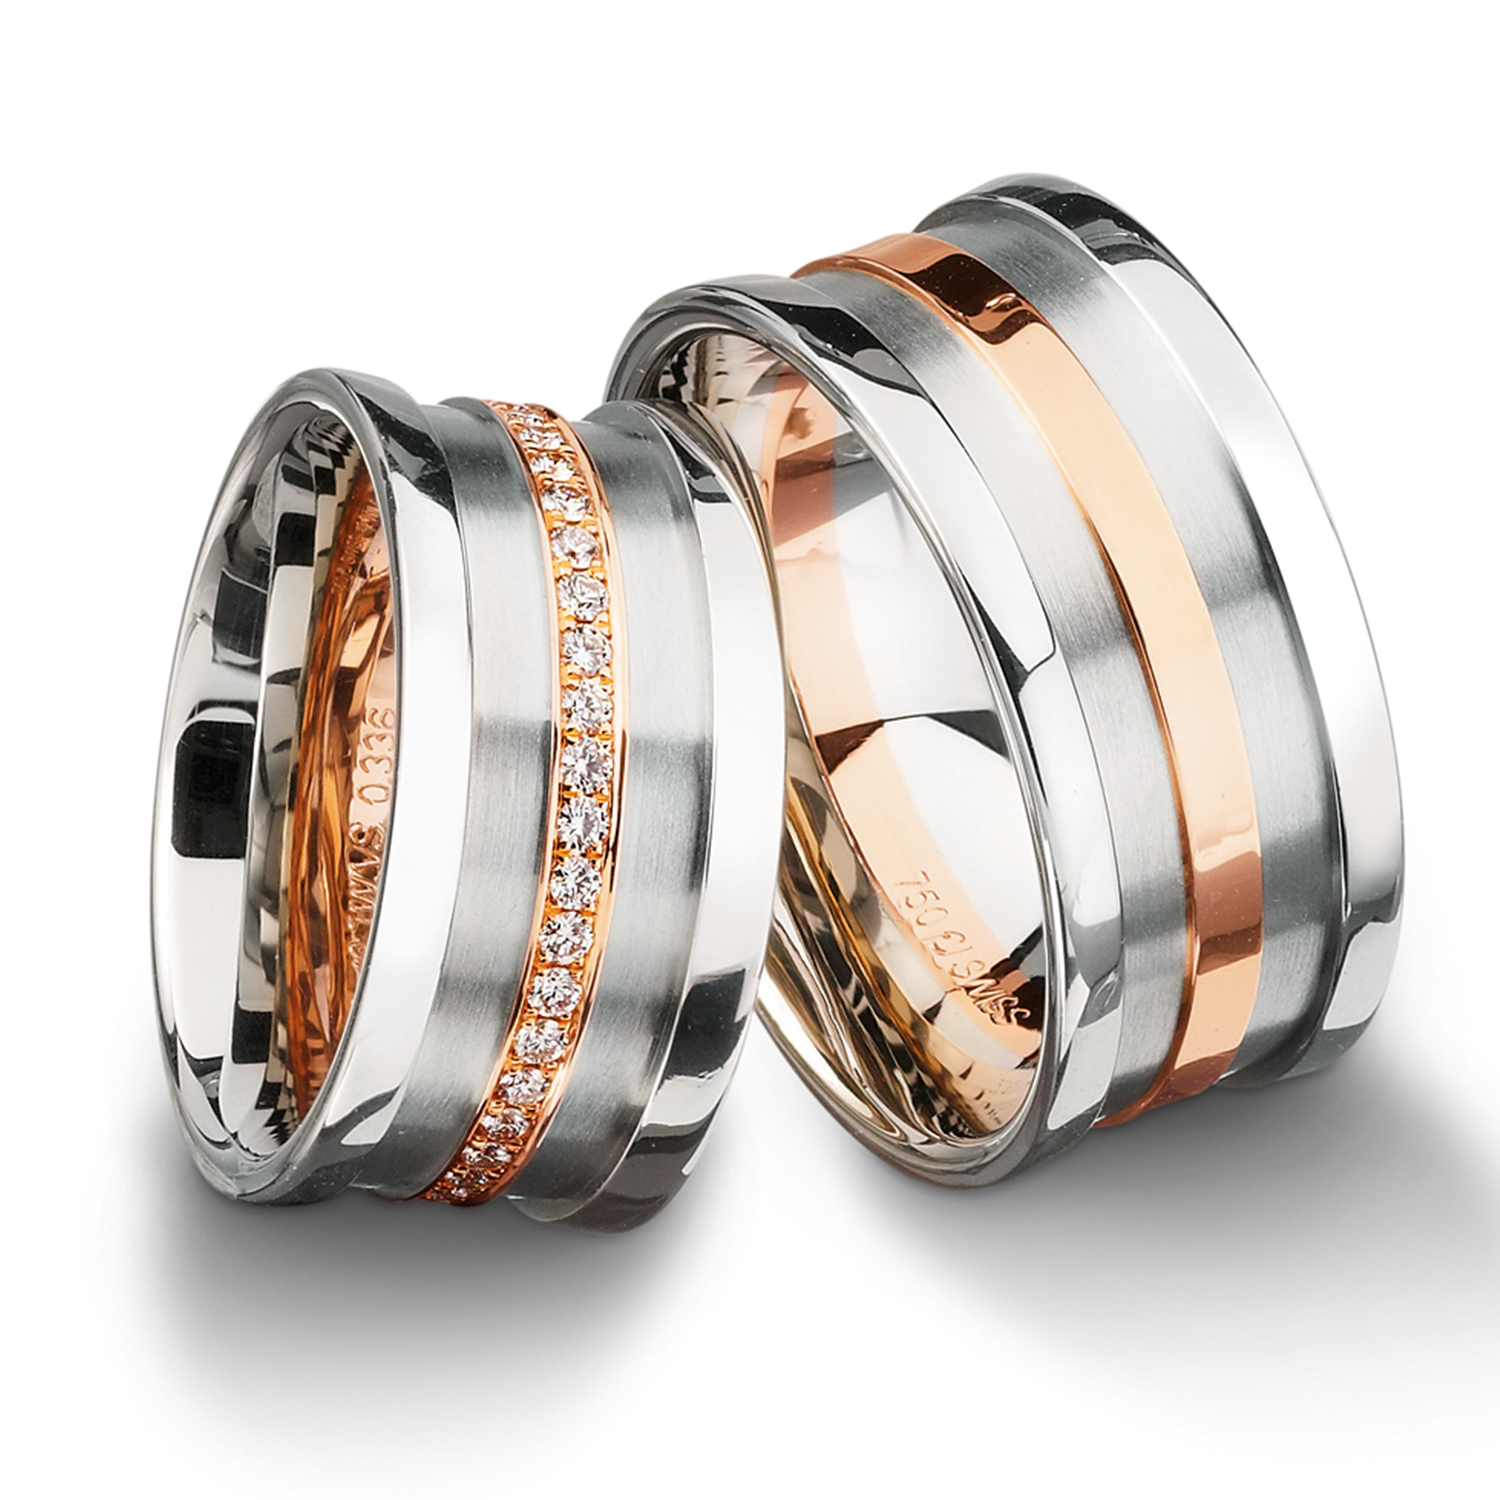 Diamond rings in gold, platinum, palladium and black with diamonds Furrer Jacot